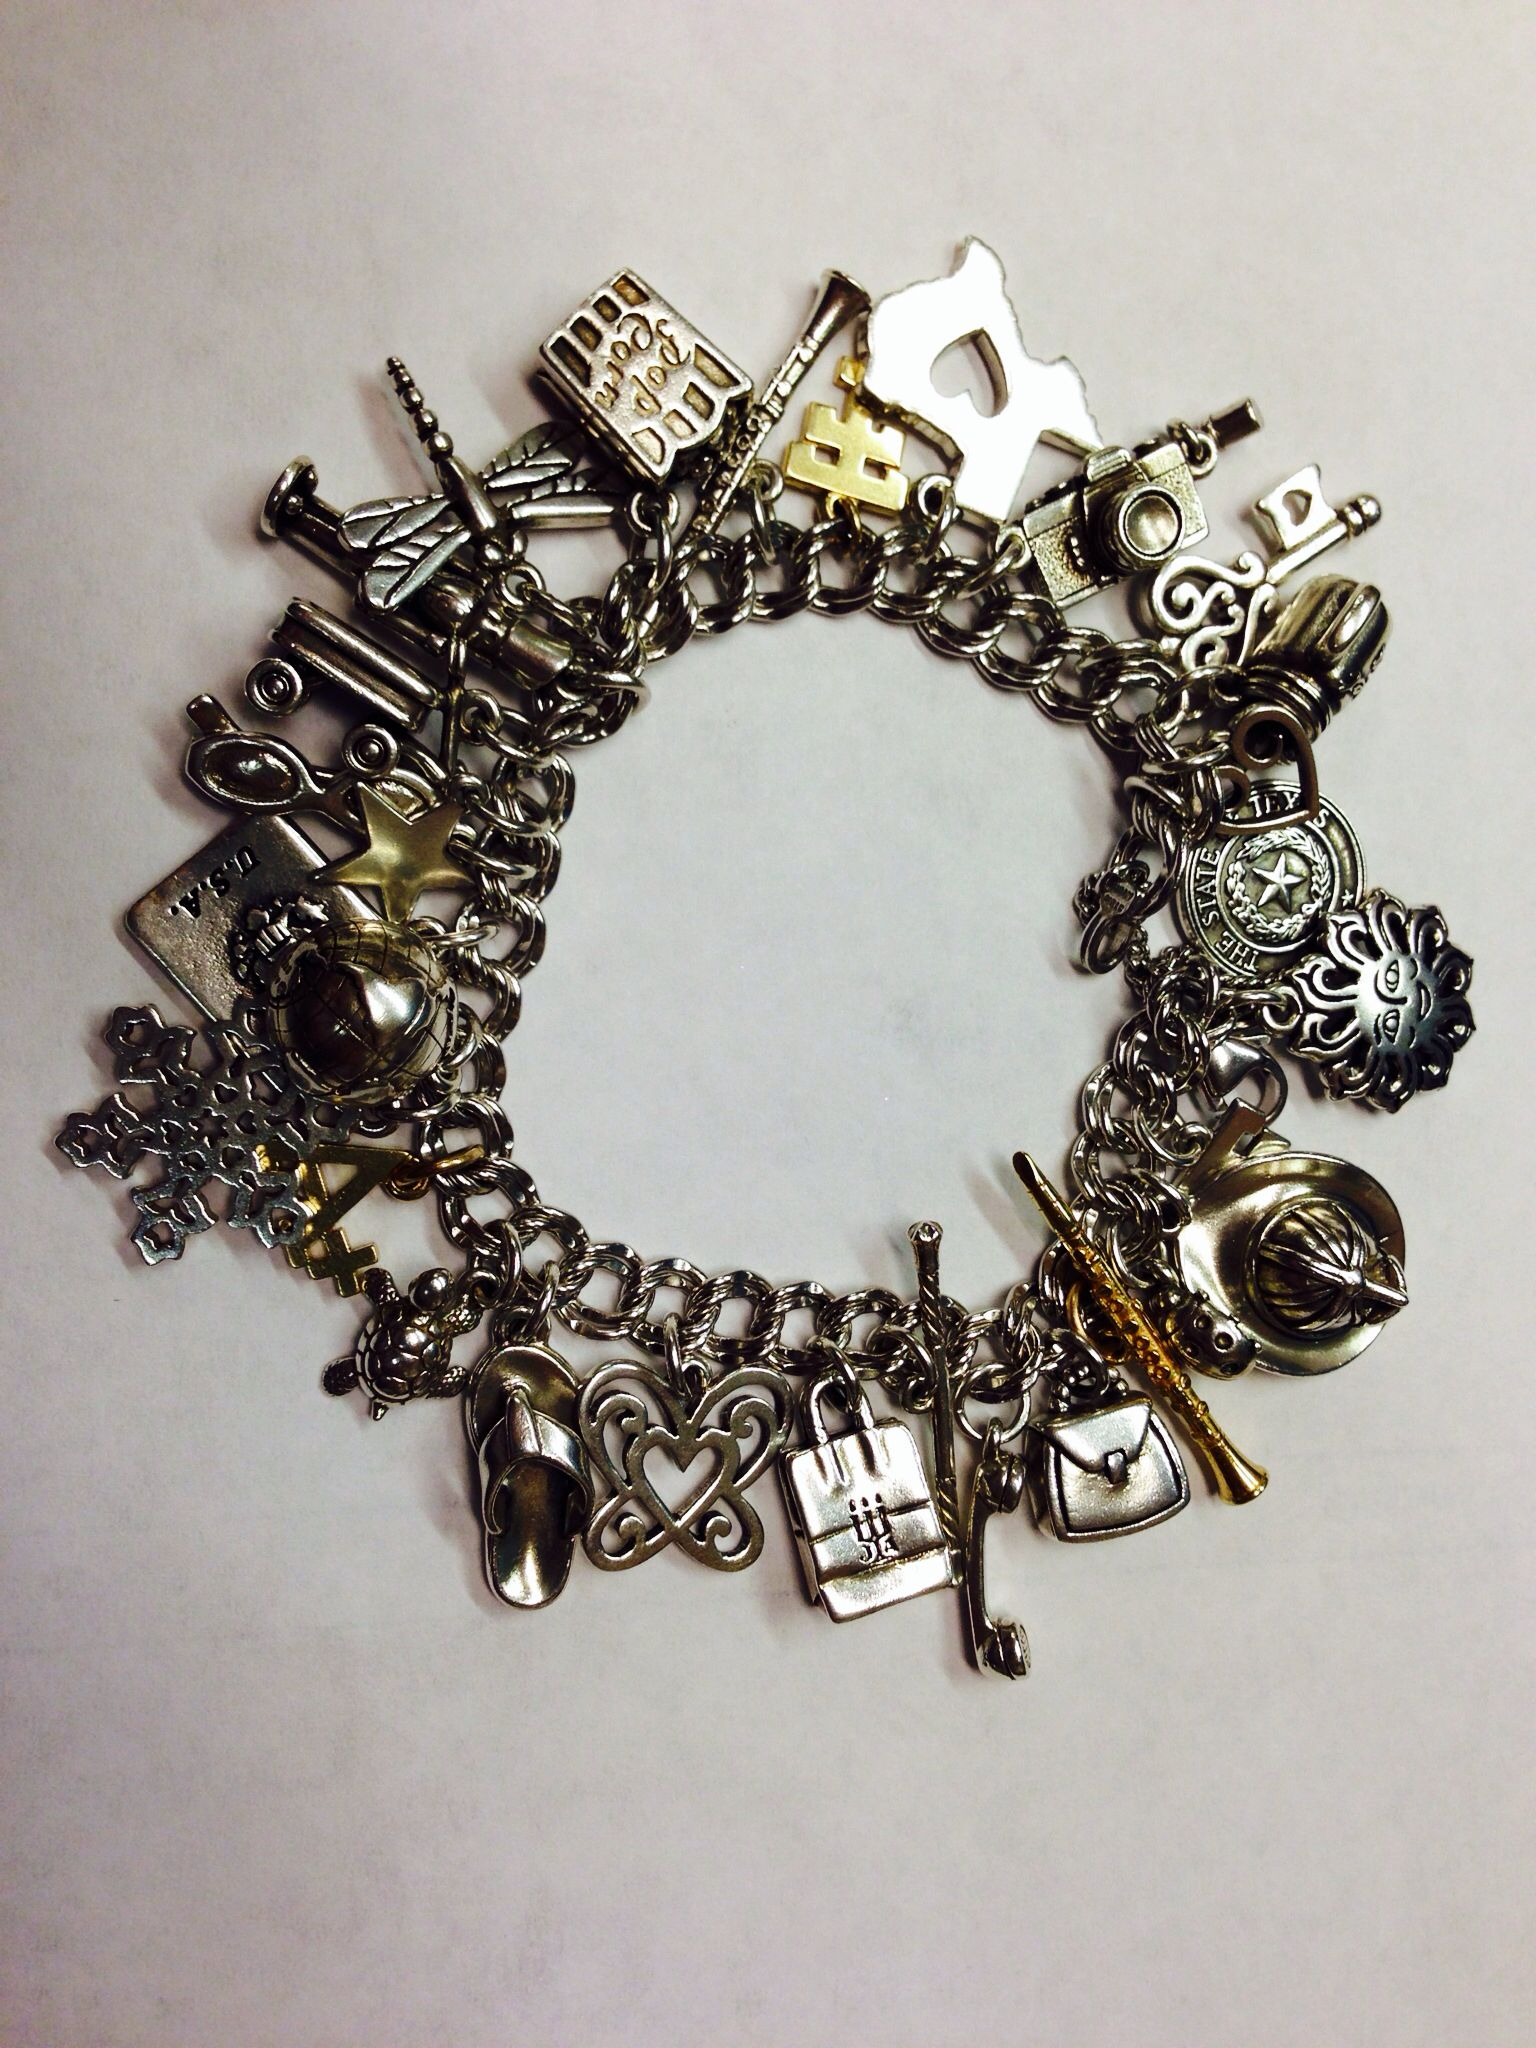 My James Avery Charm Bracelet  I've Been Collecting Them Since The 6th  Grade